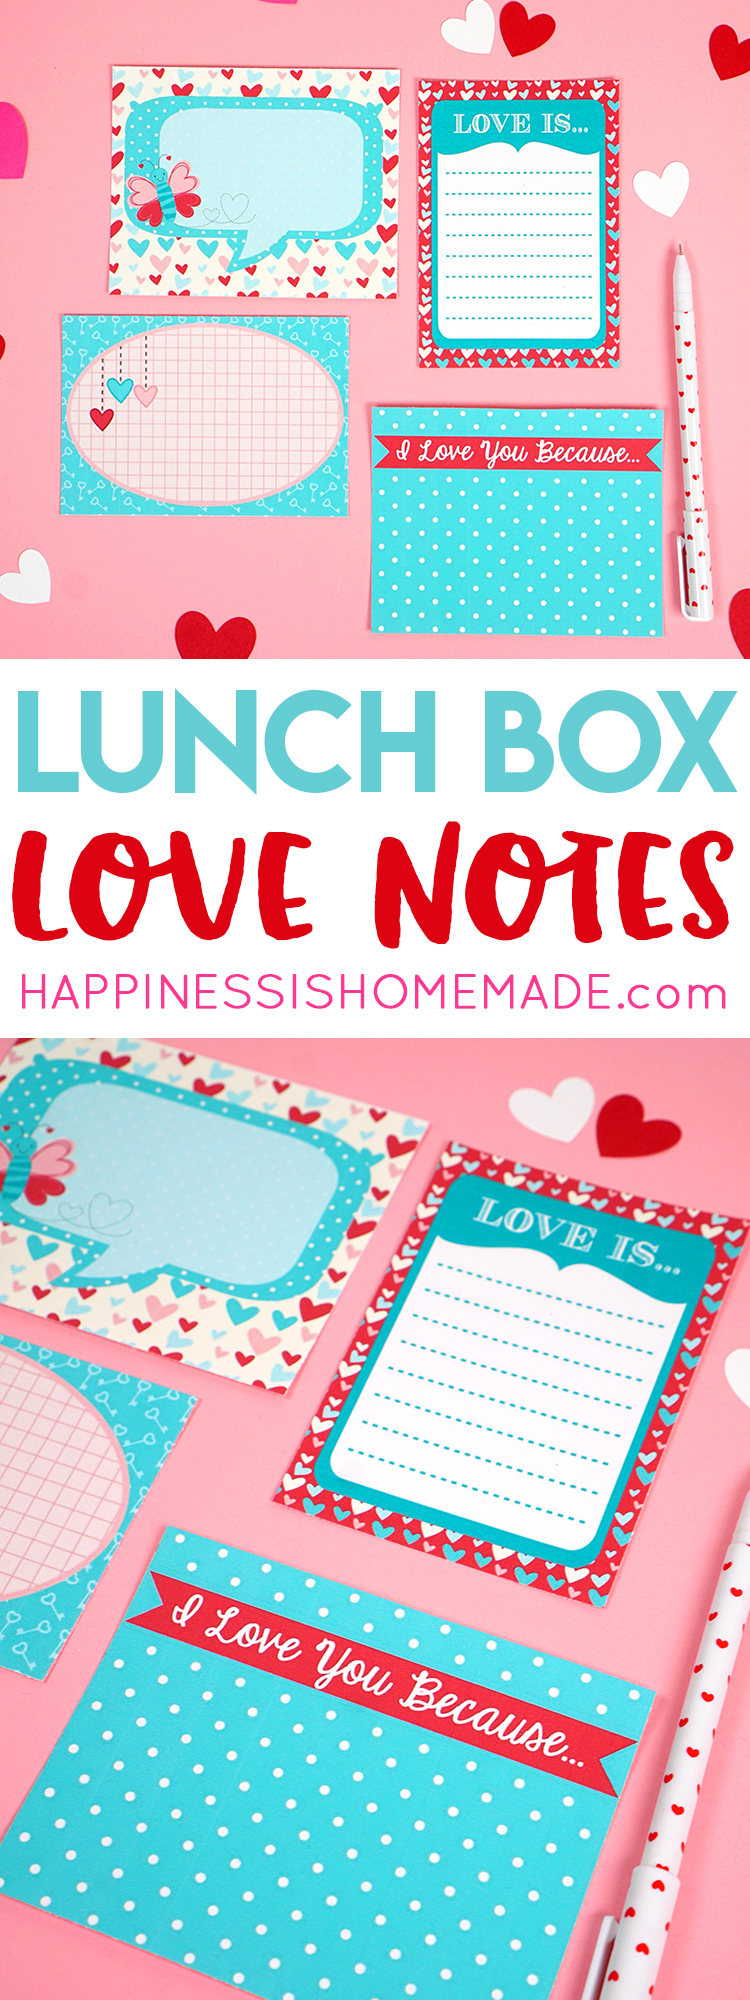 Lunch Box Love Notes - Happiness is Homemade